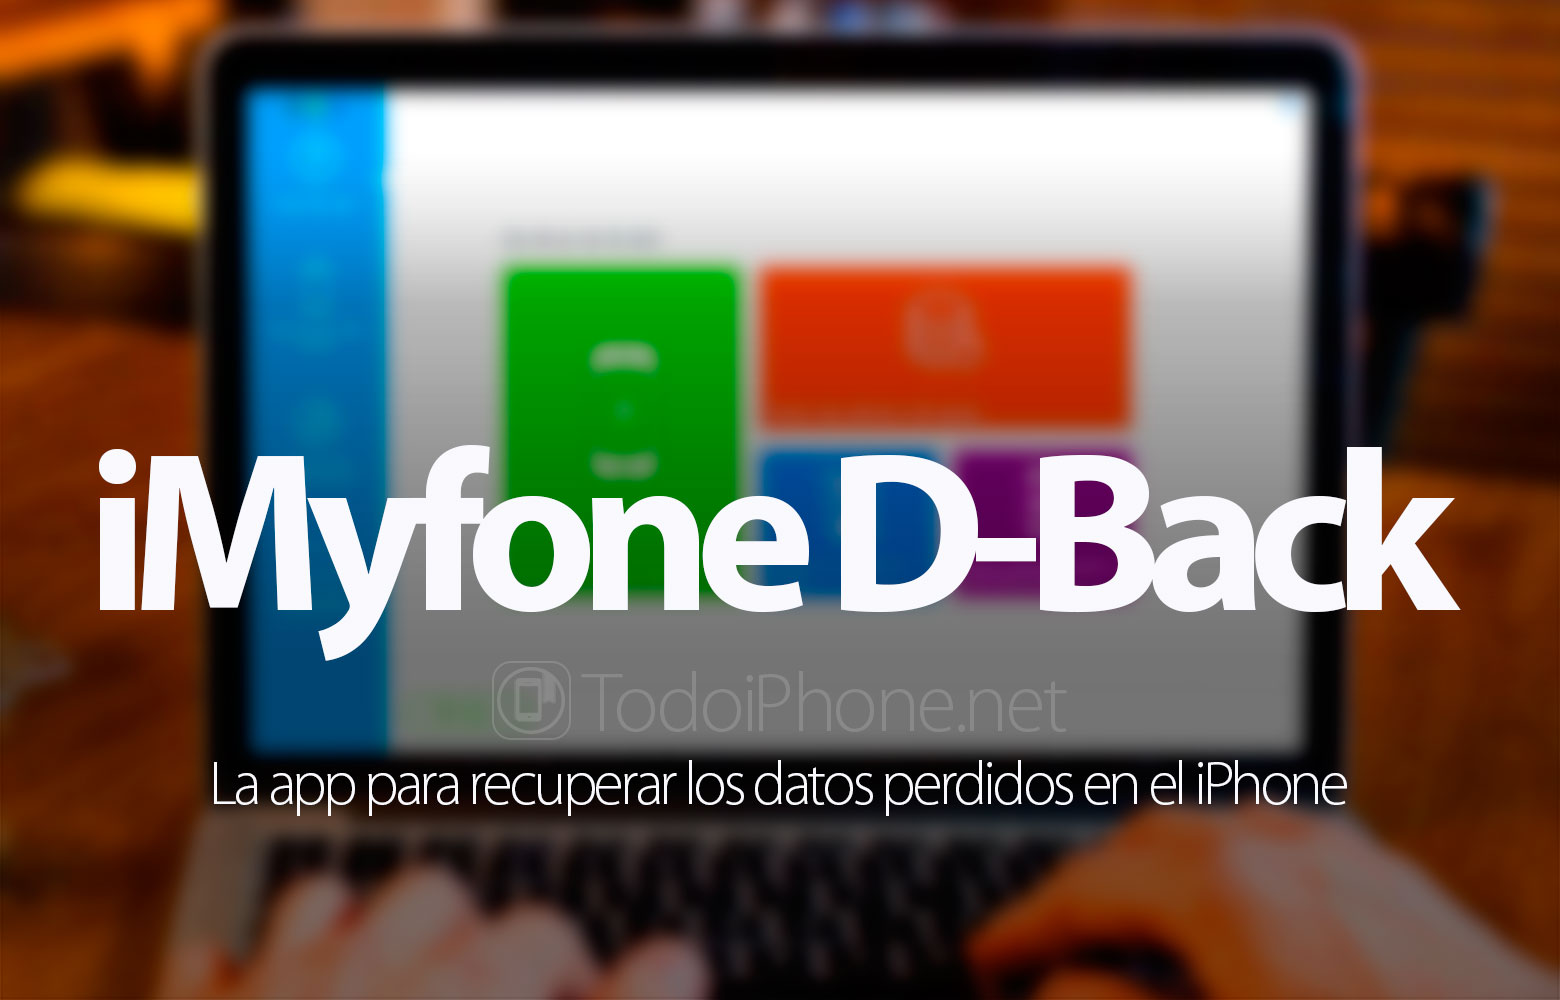 Recover lost data on iPhone? IMyfone D-Back test 1